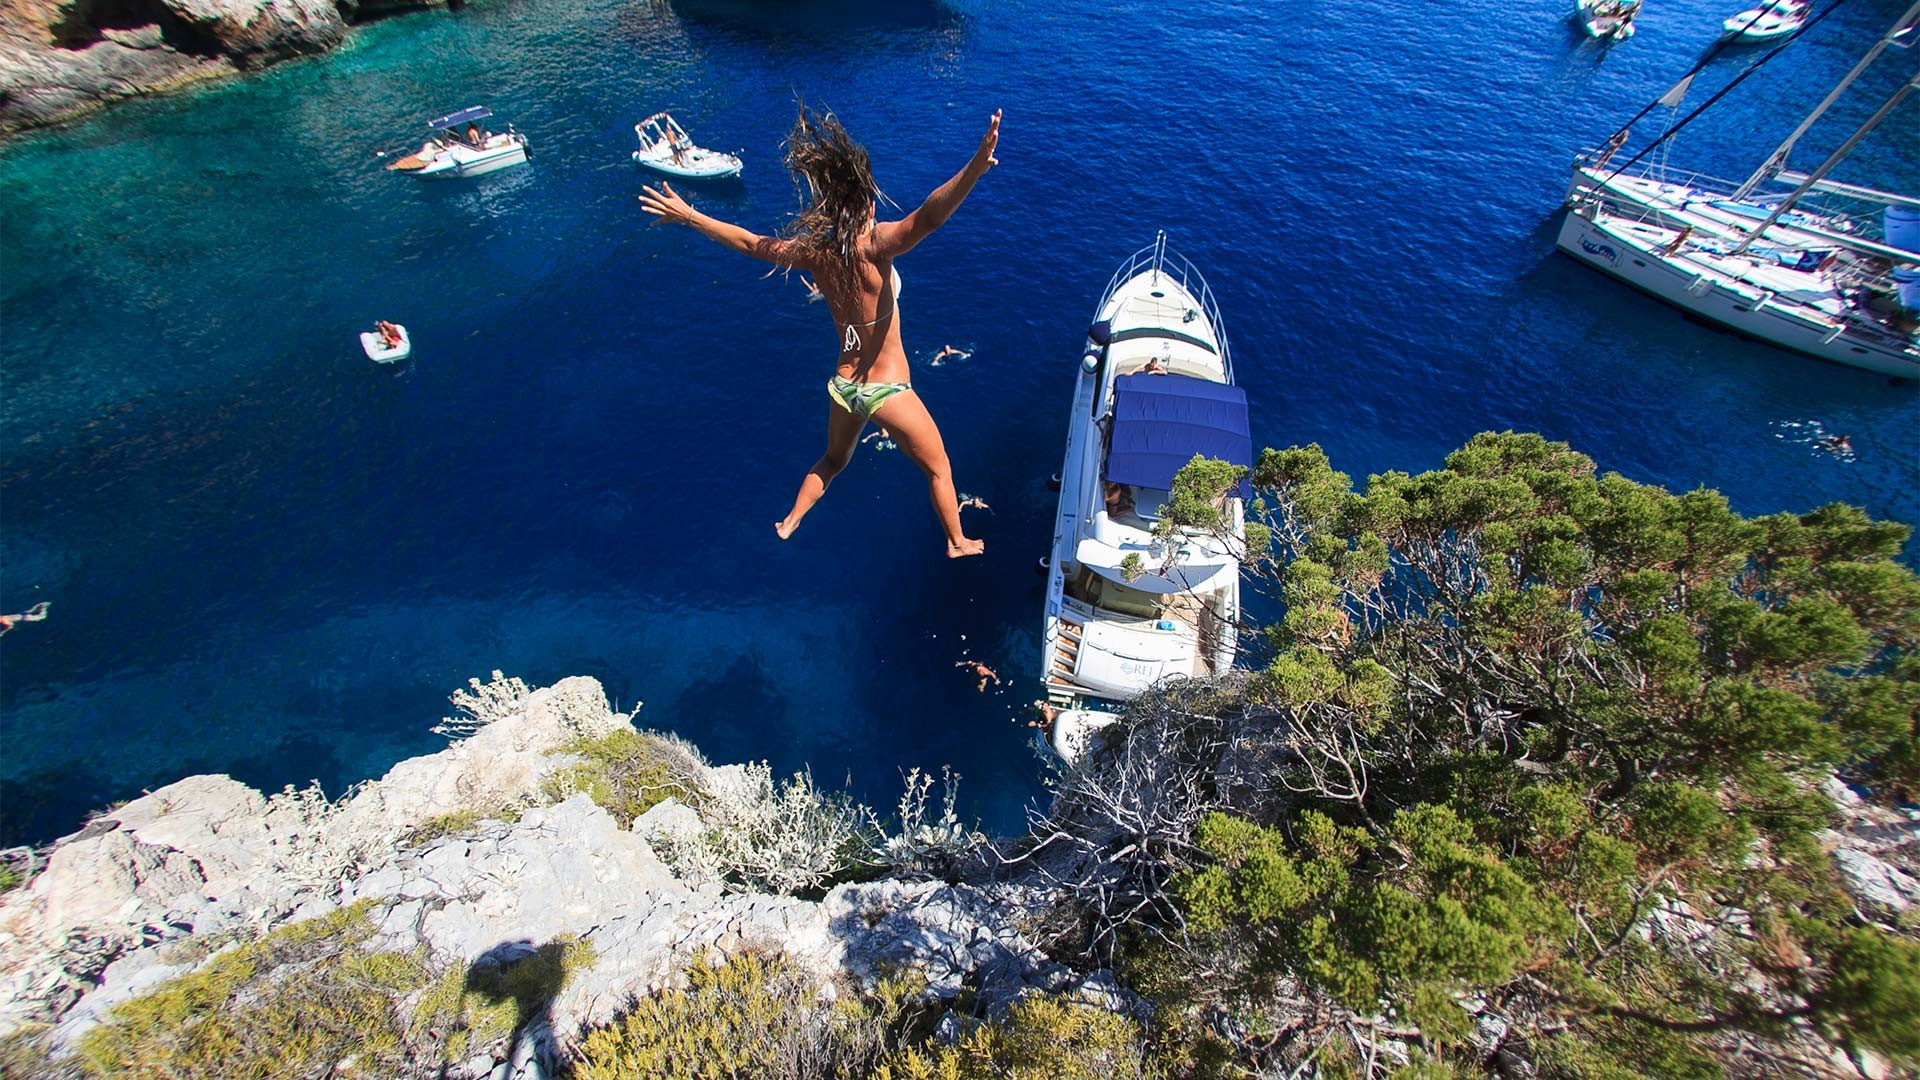 Cliff diving off the coast of Croatia